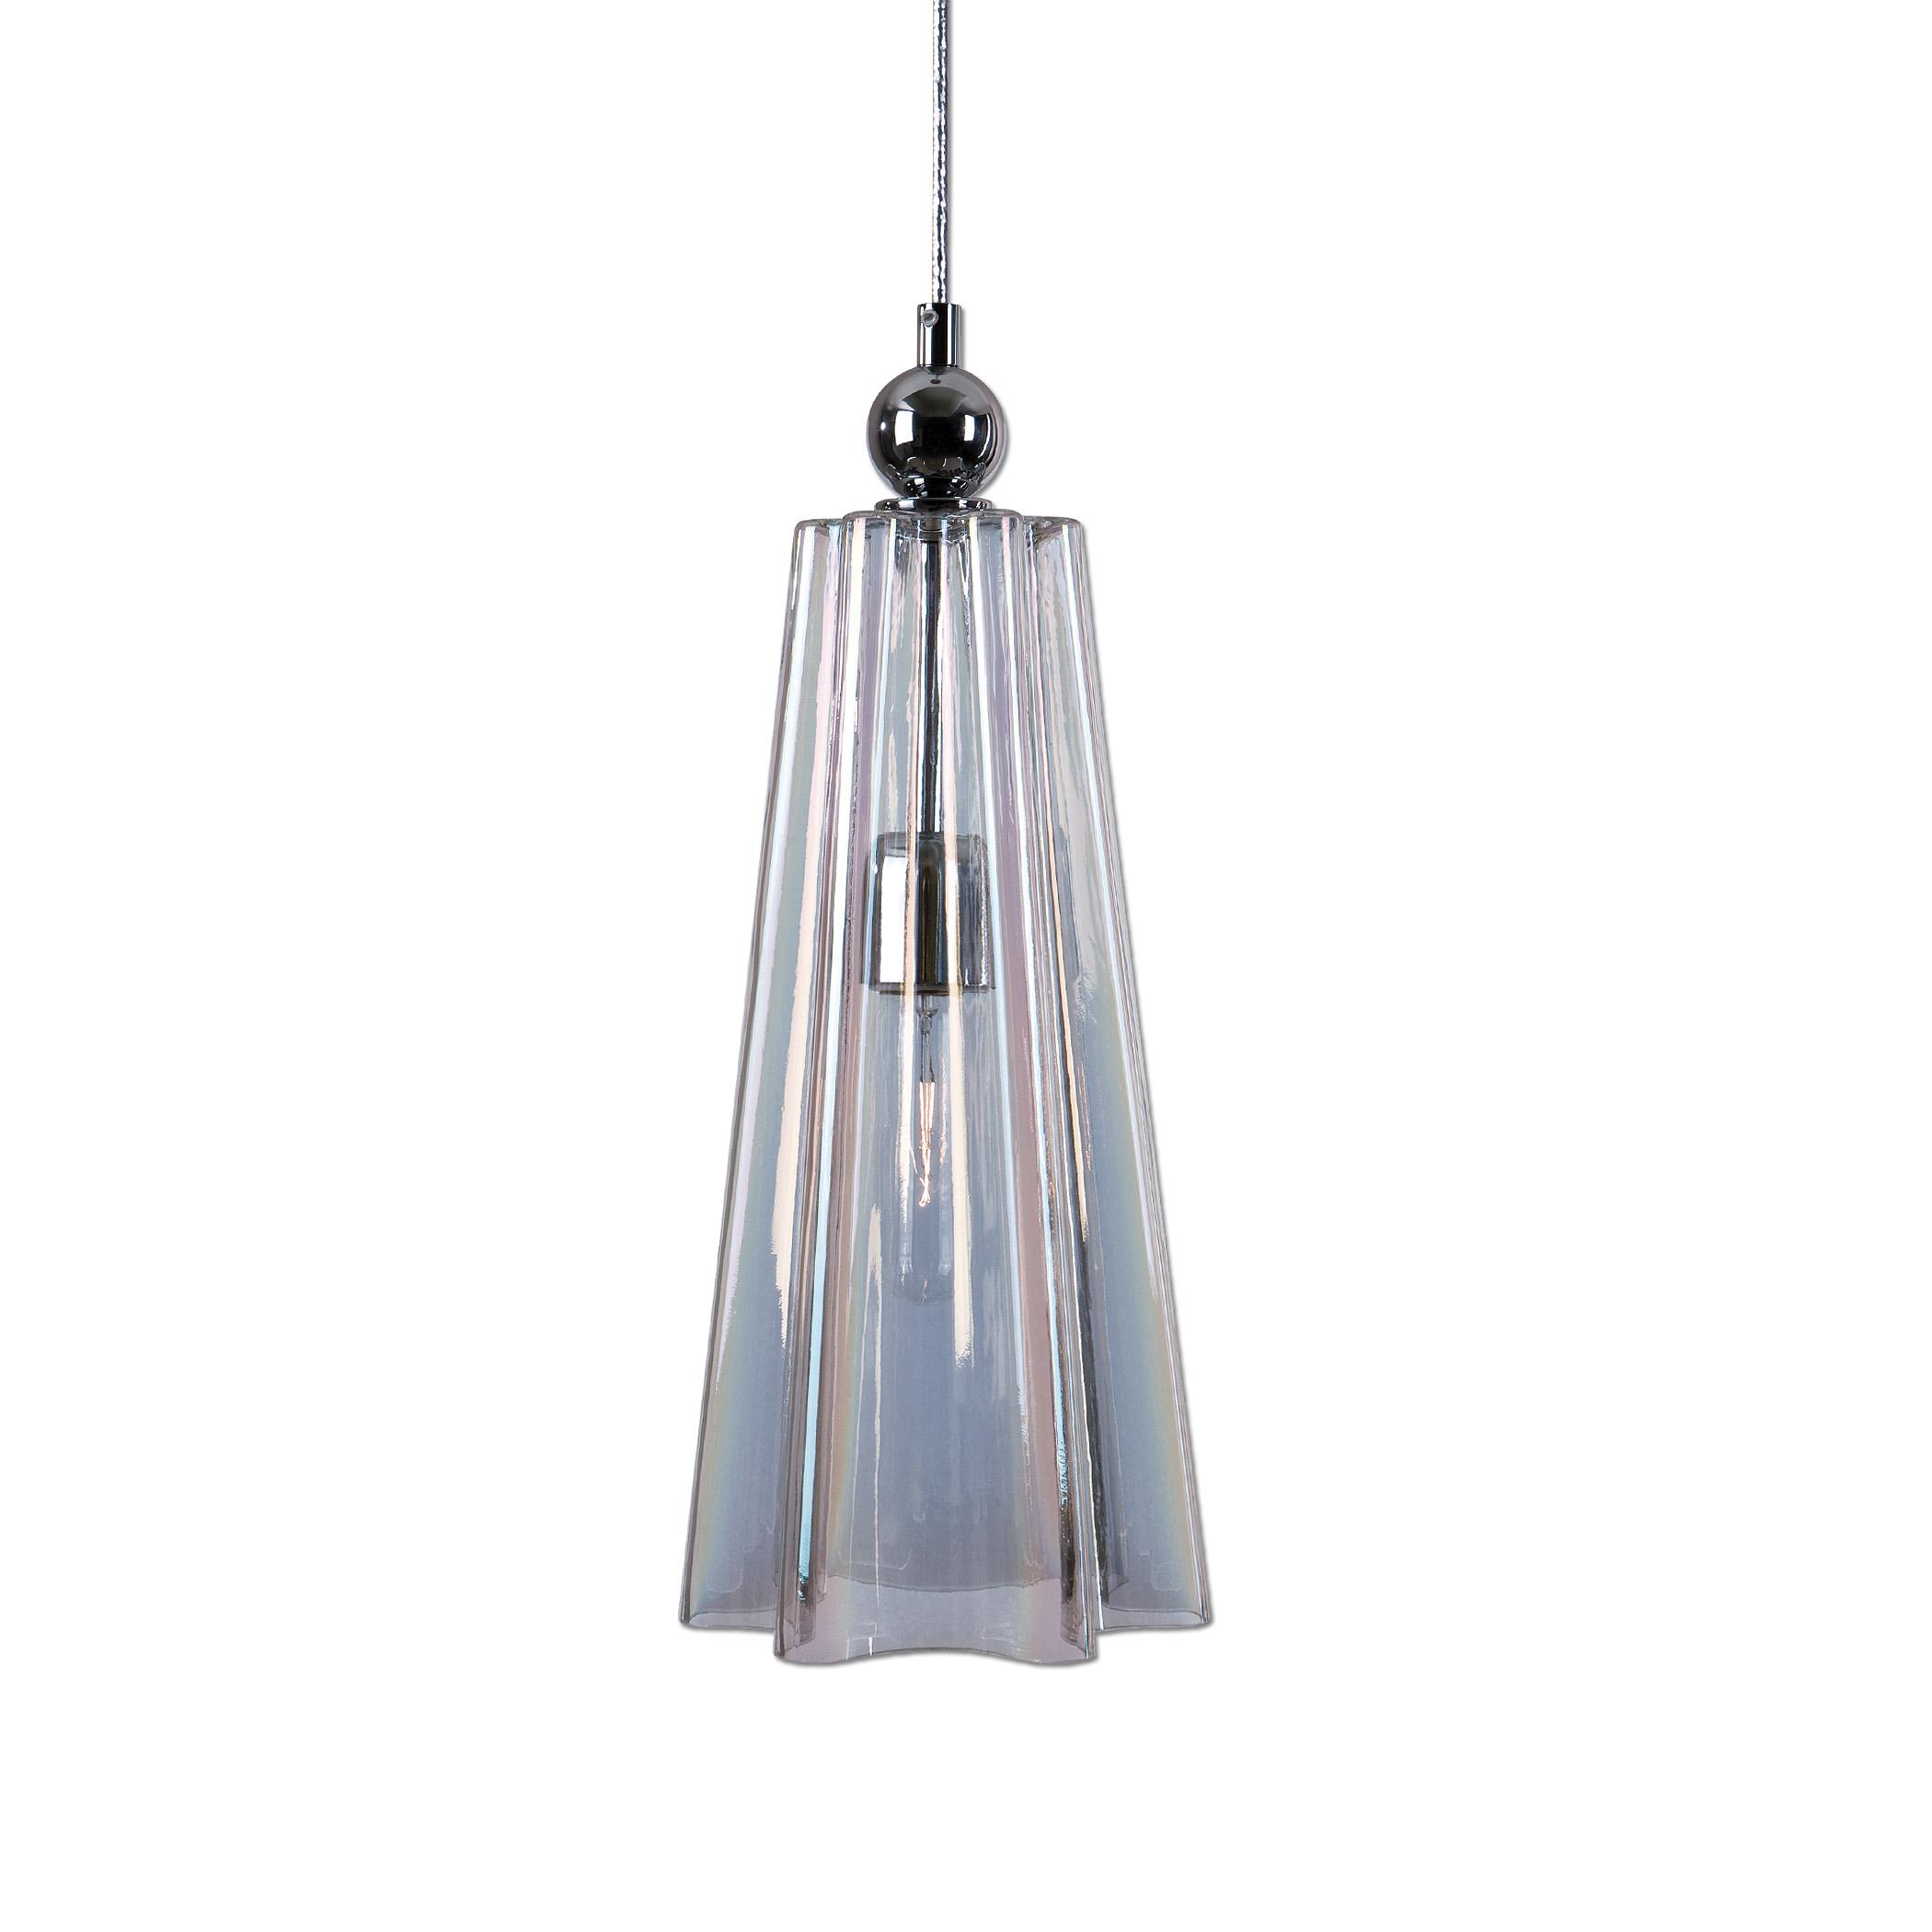 Uttermost Lighting Fixtures Beckley 1 Light Fluted Glass Mini Pendant - Item Number: 22068